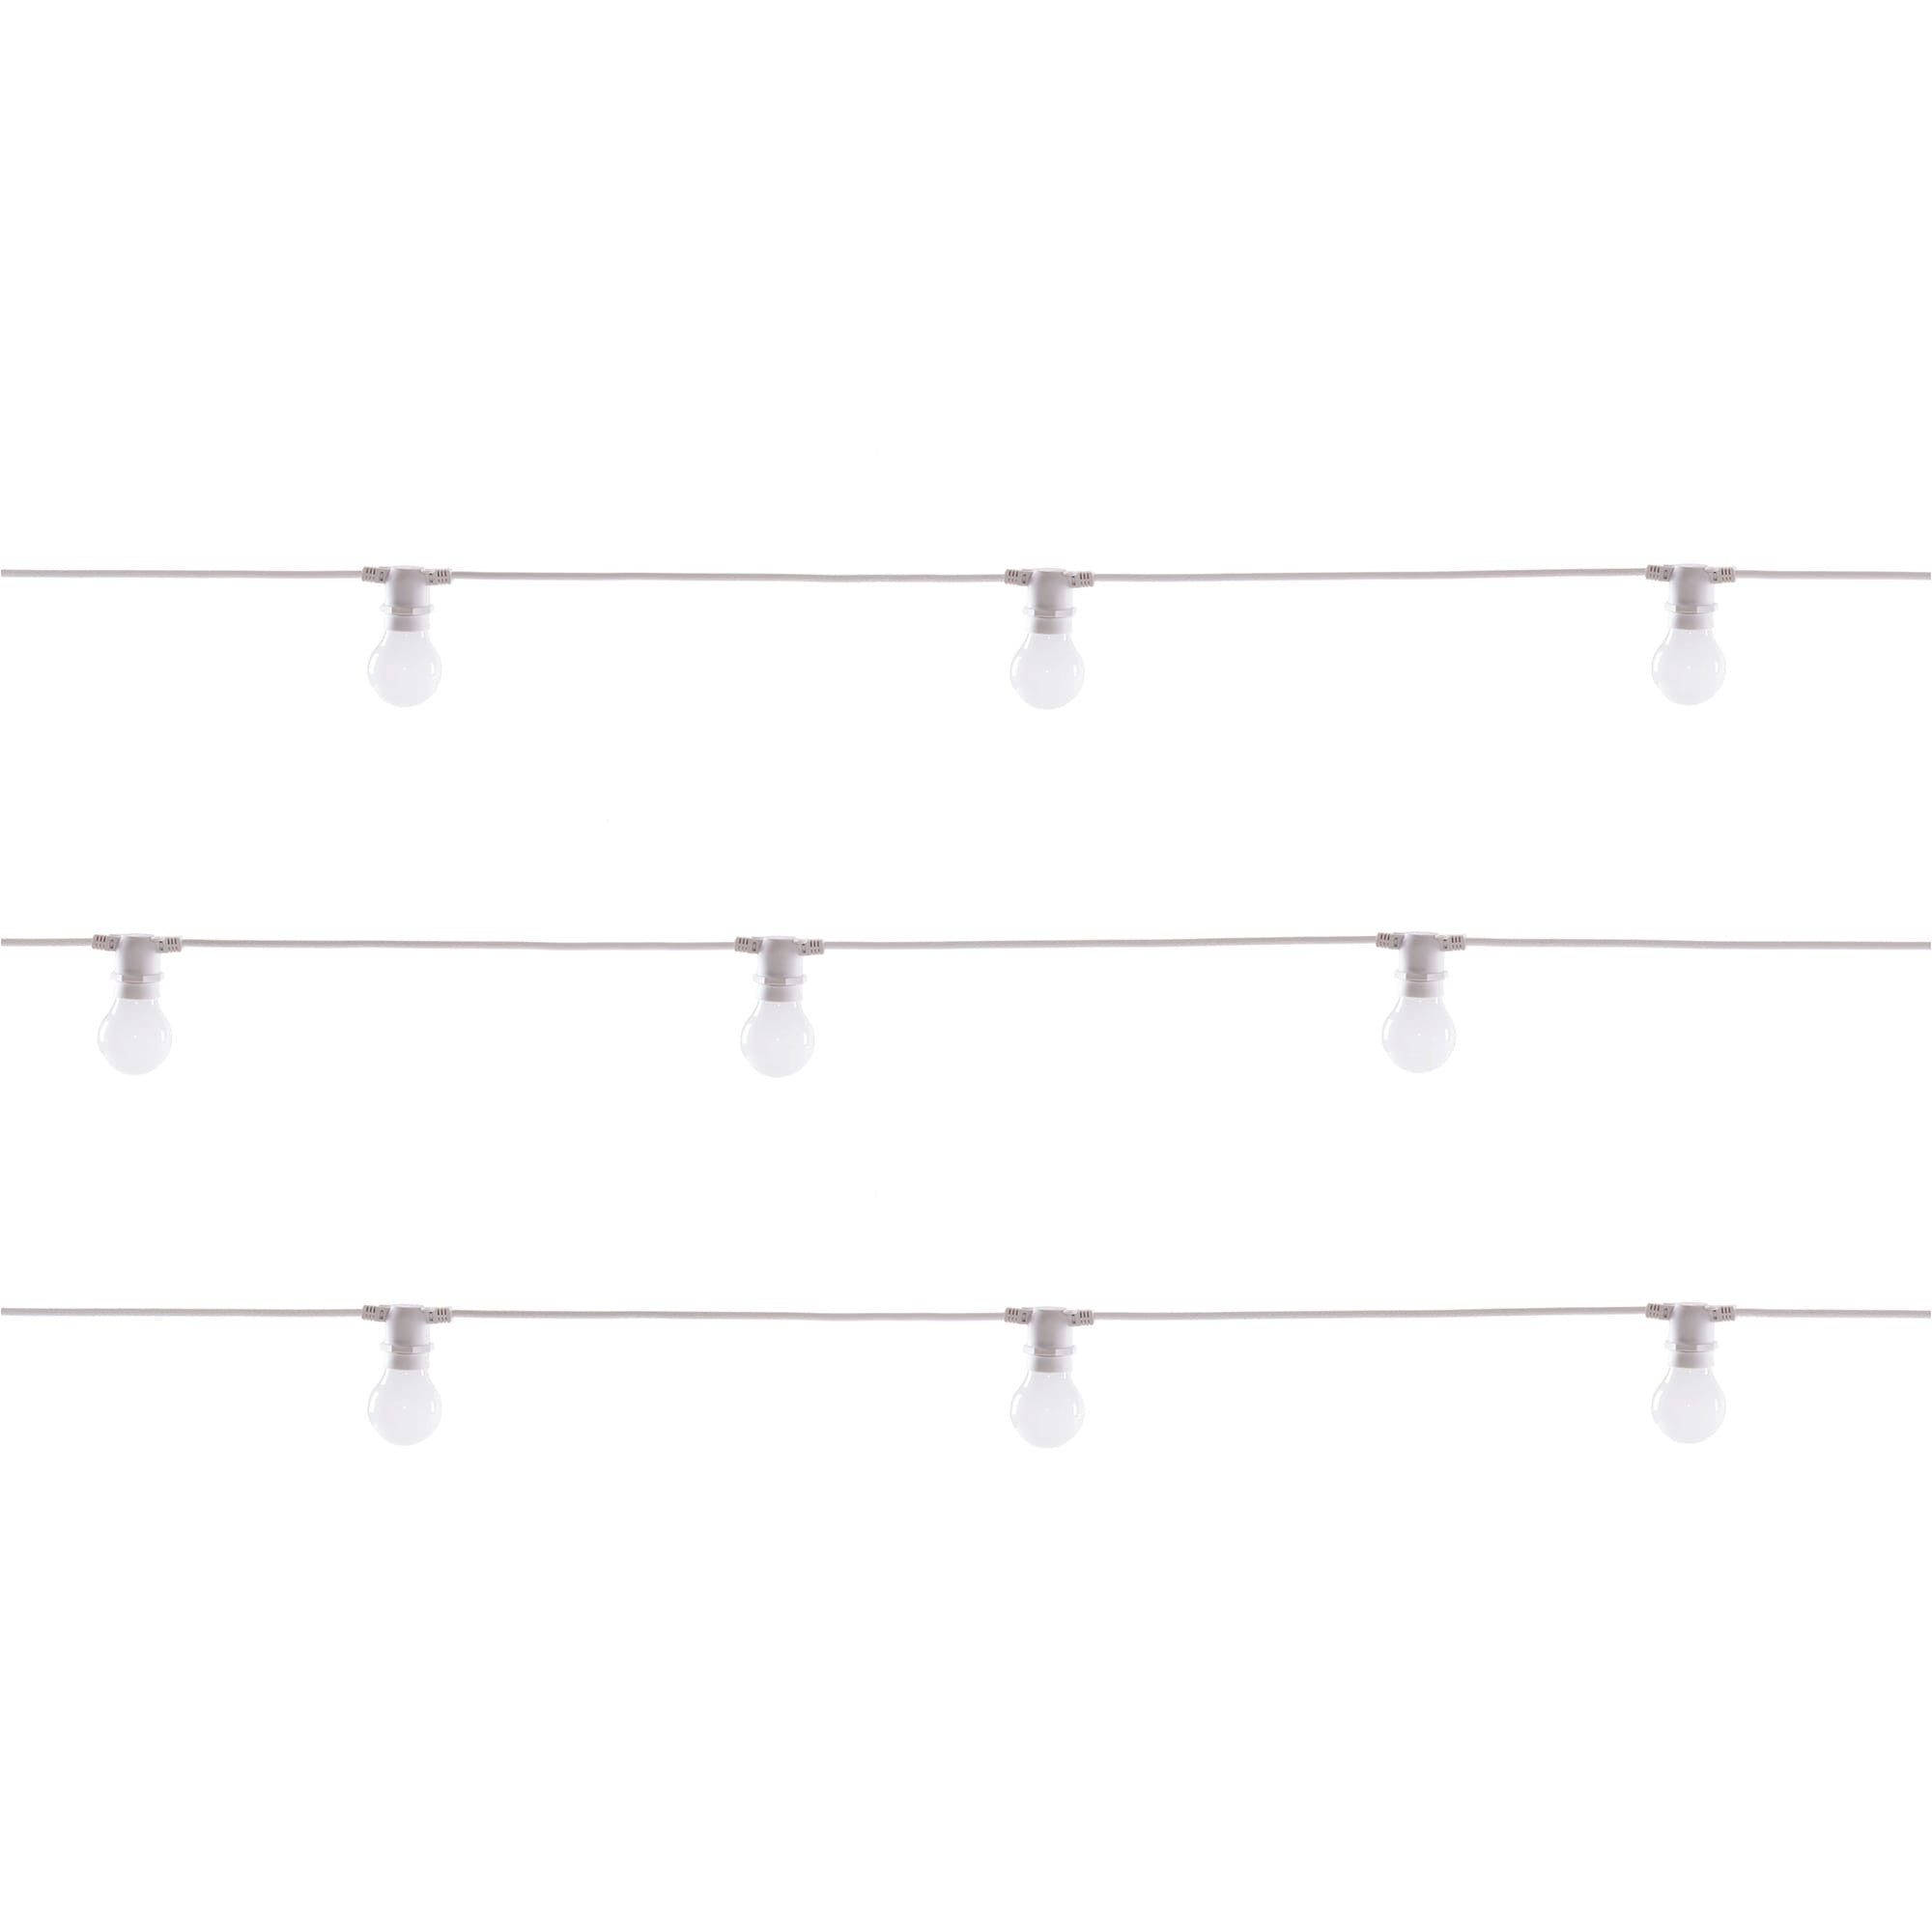 Bella Vista Set of 10 Lights in White design by Seletti